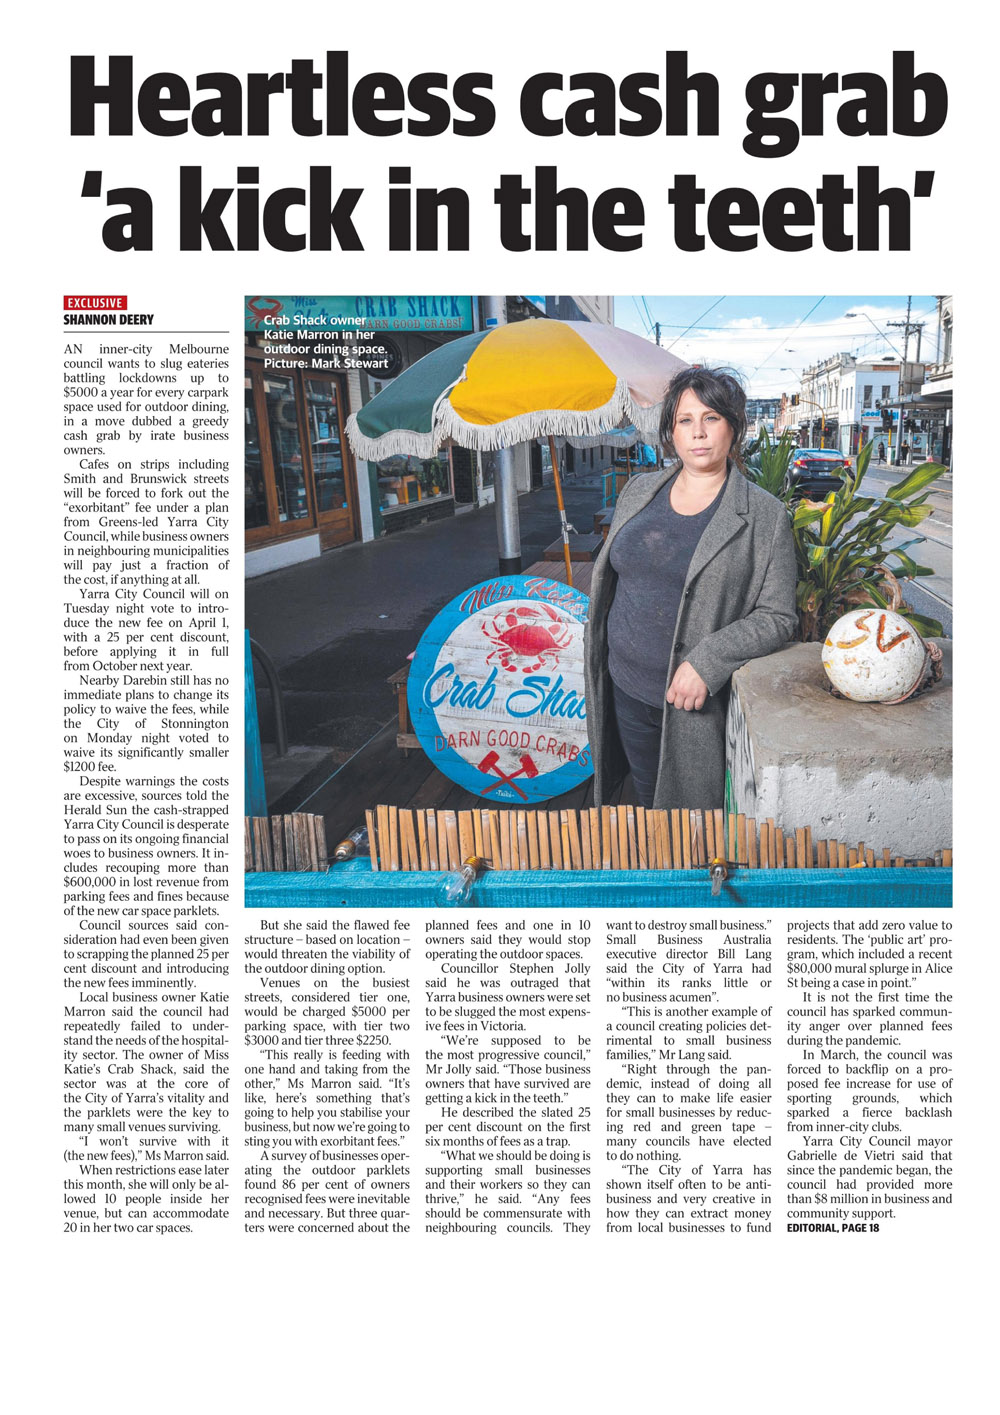 Bill Lang in the Herald Sun - page 9